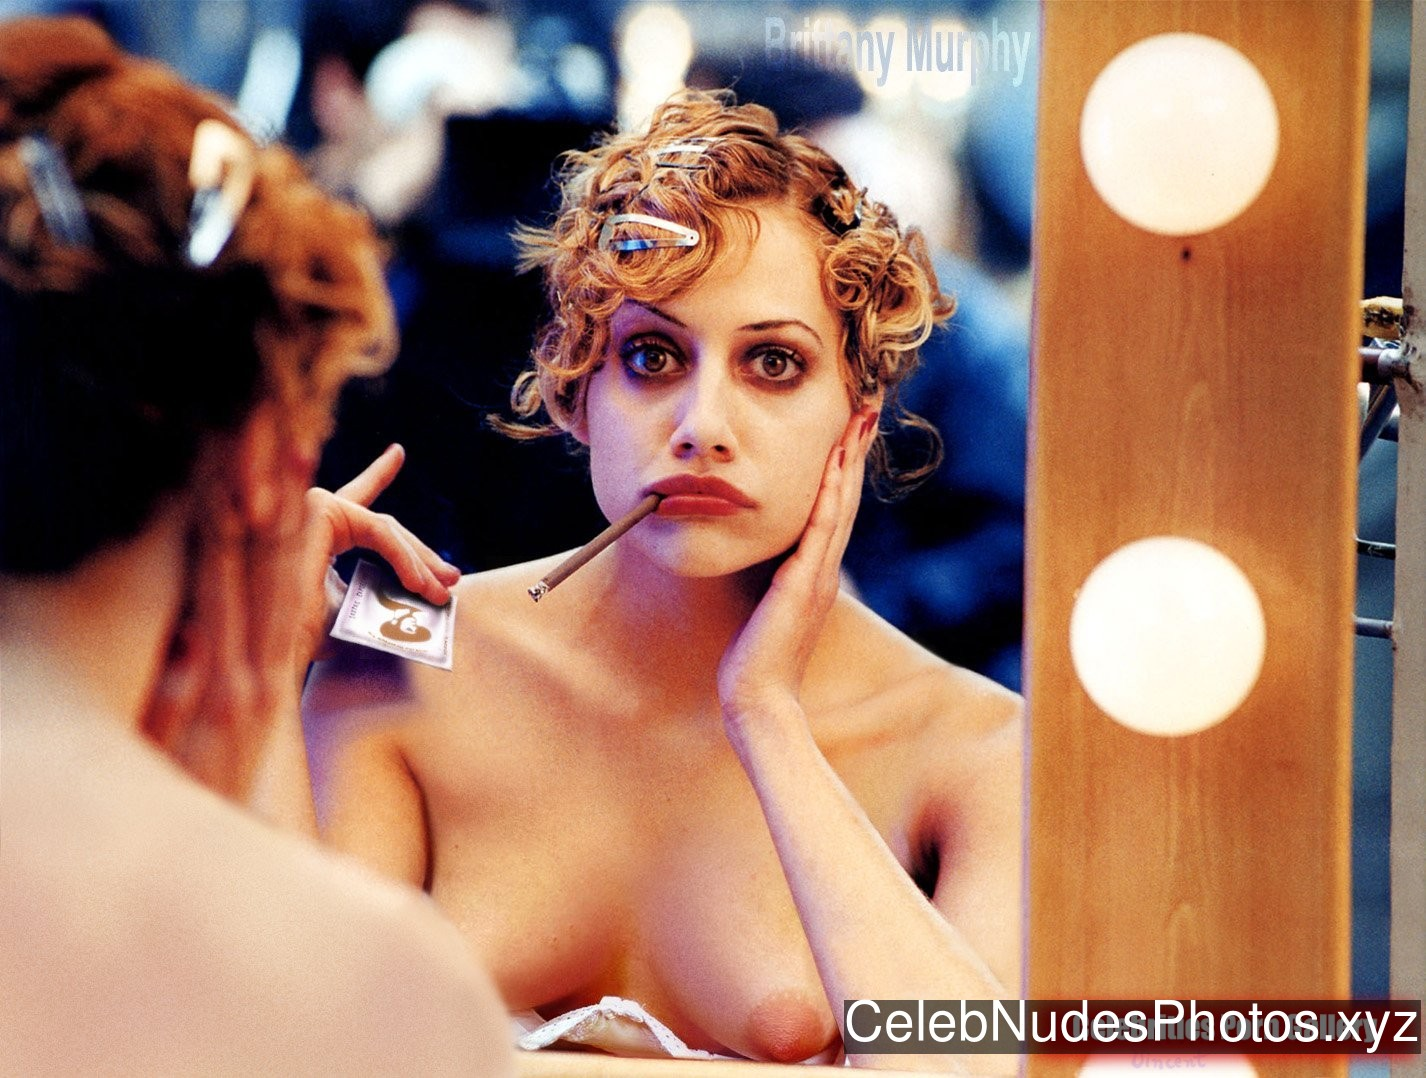 Brittany Murphy nude celebrities